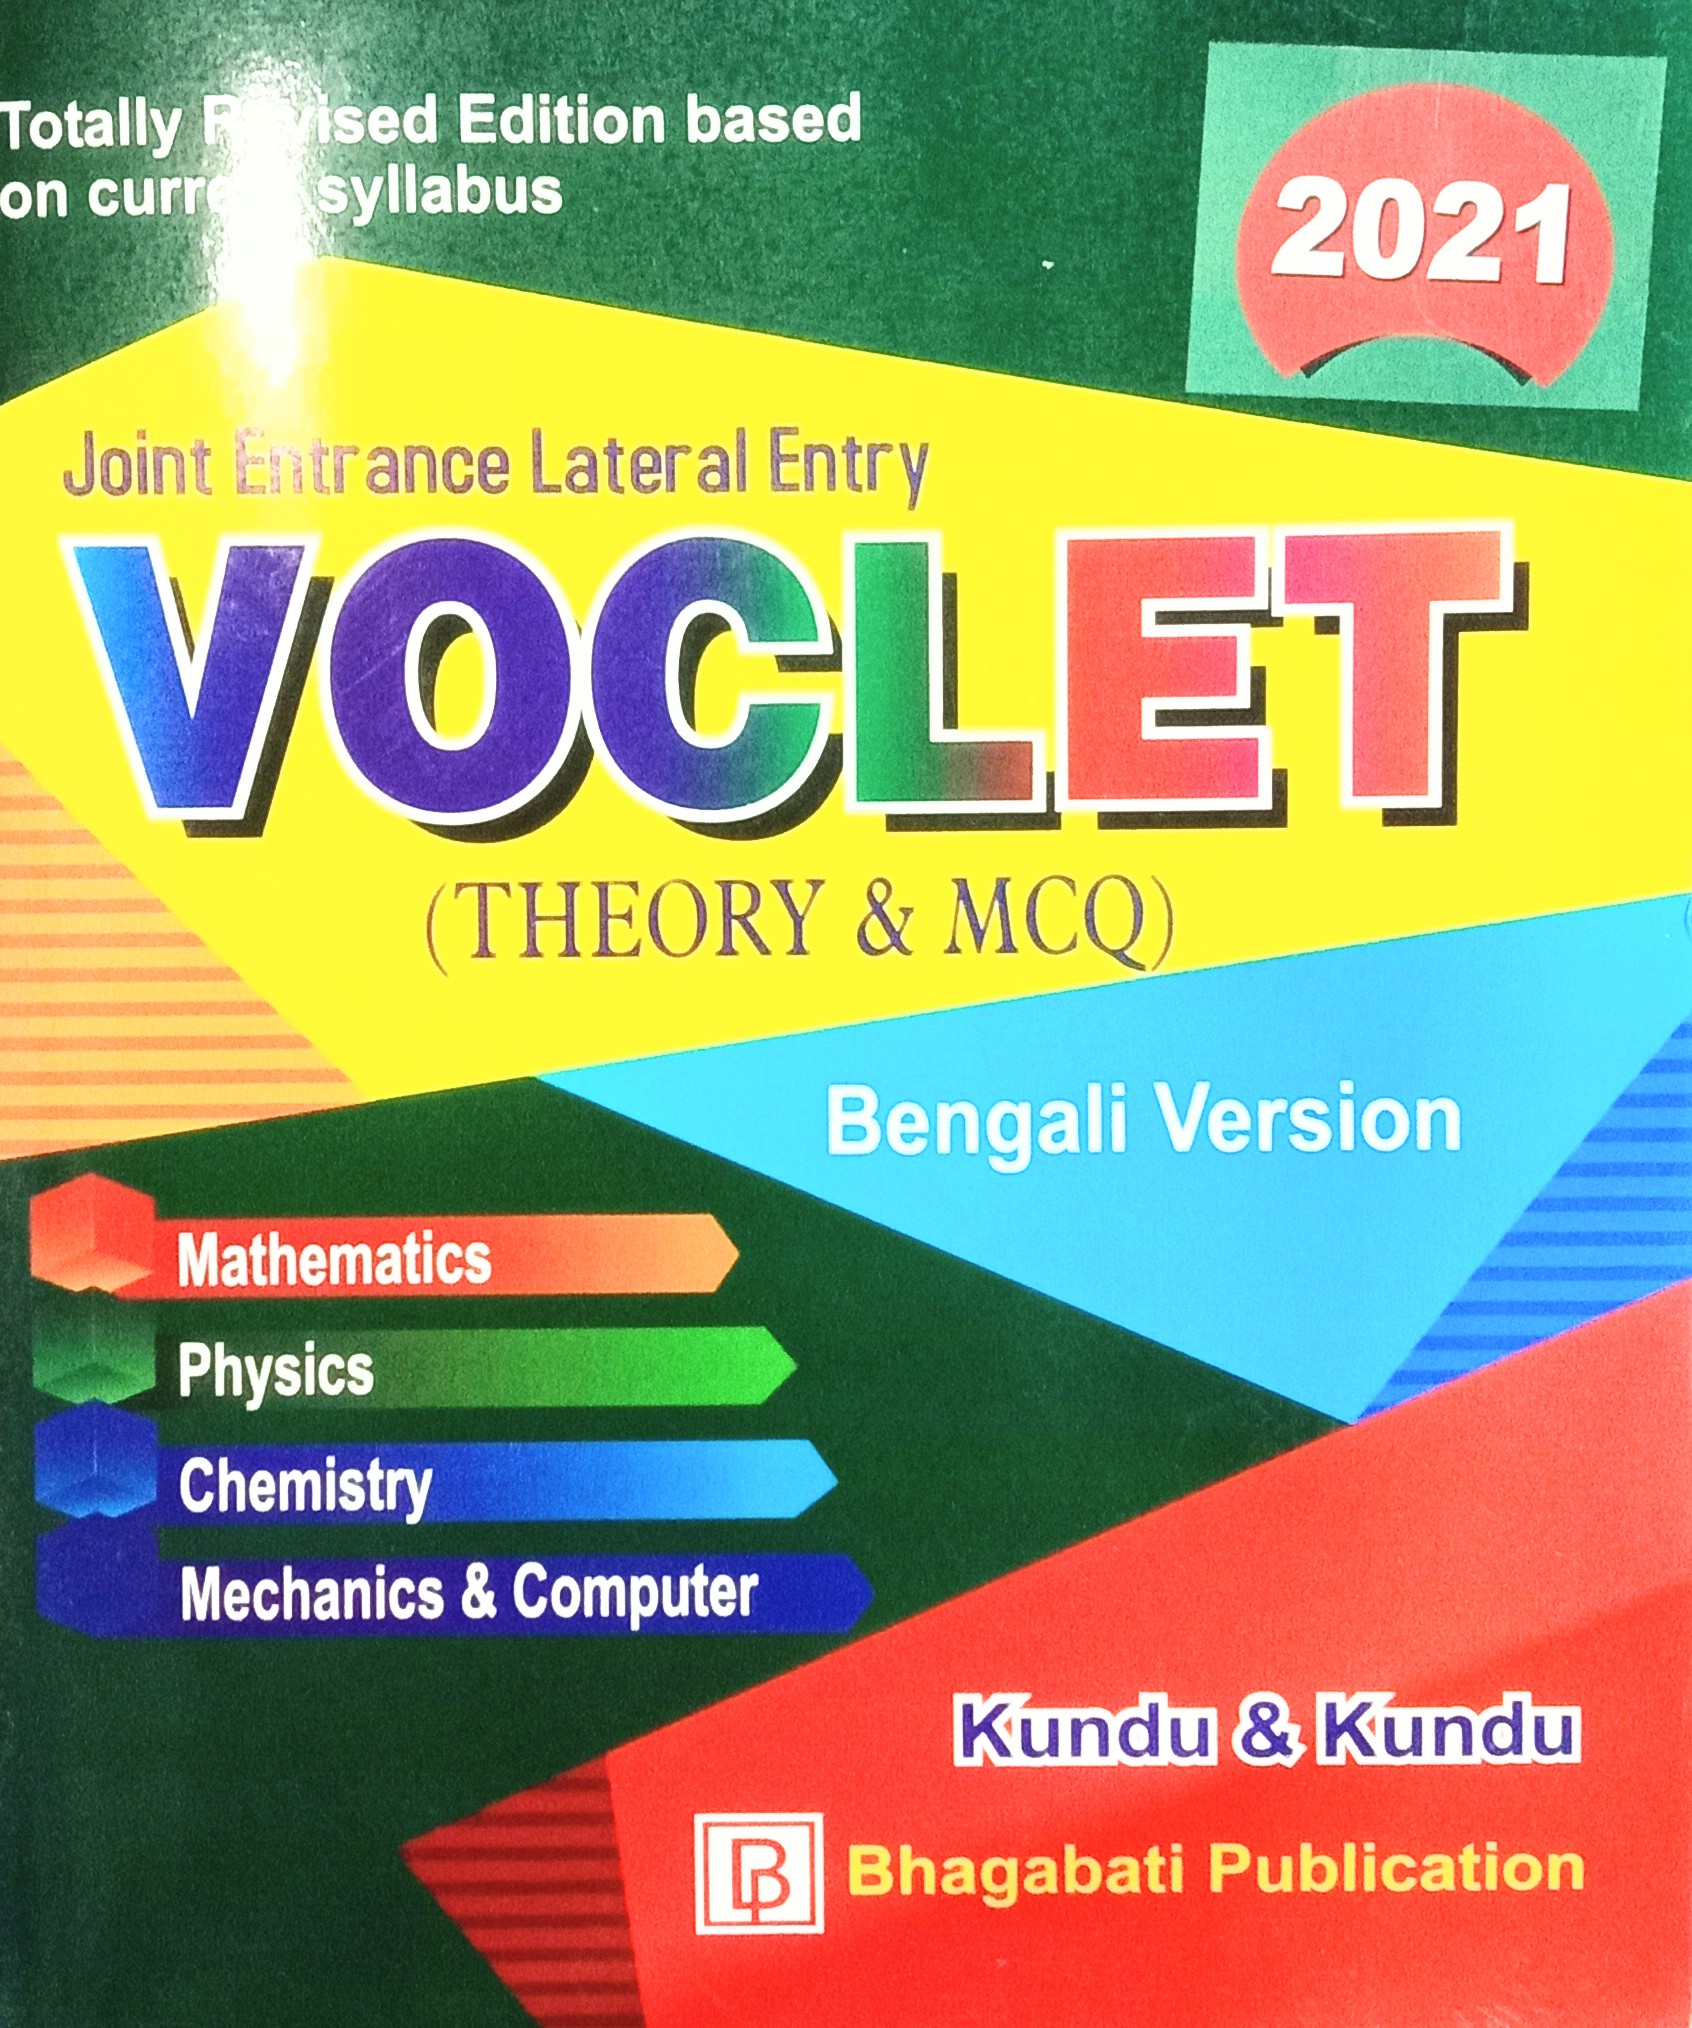 JEE LATERAL ENTRY EXAM VOCLET By KUNDU & KUNDU